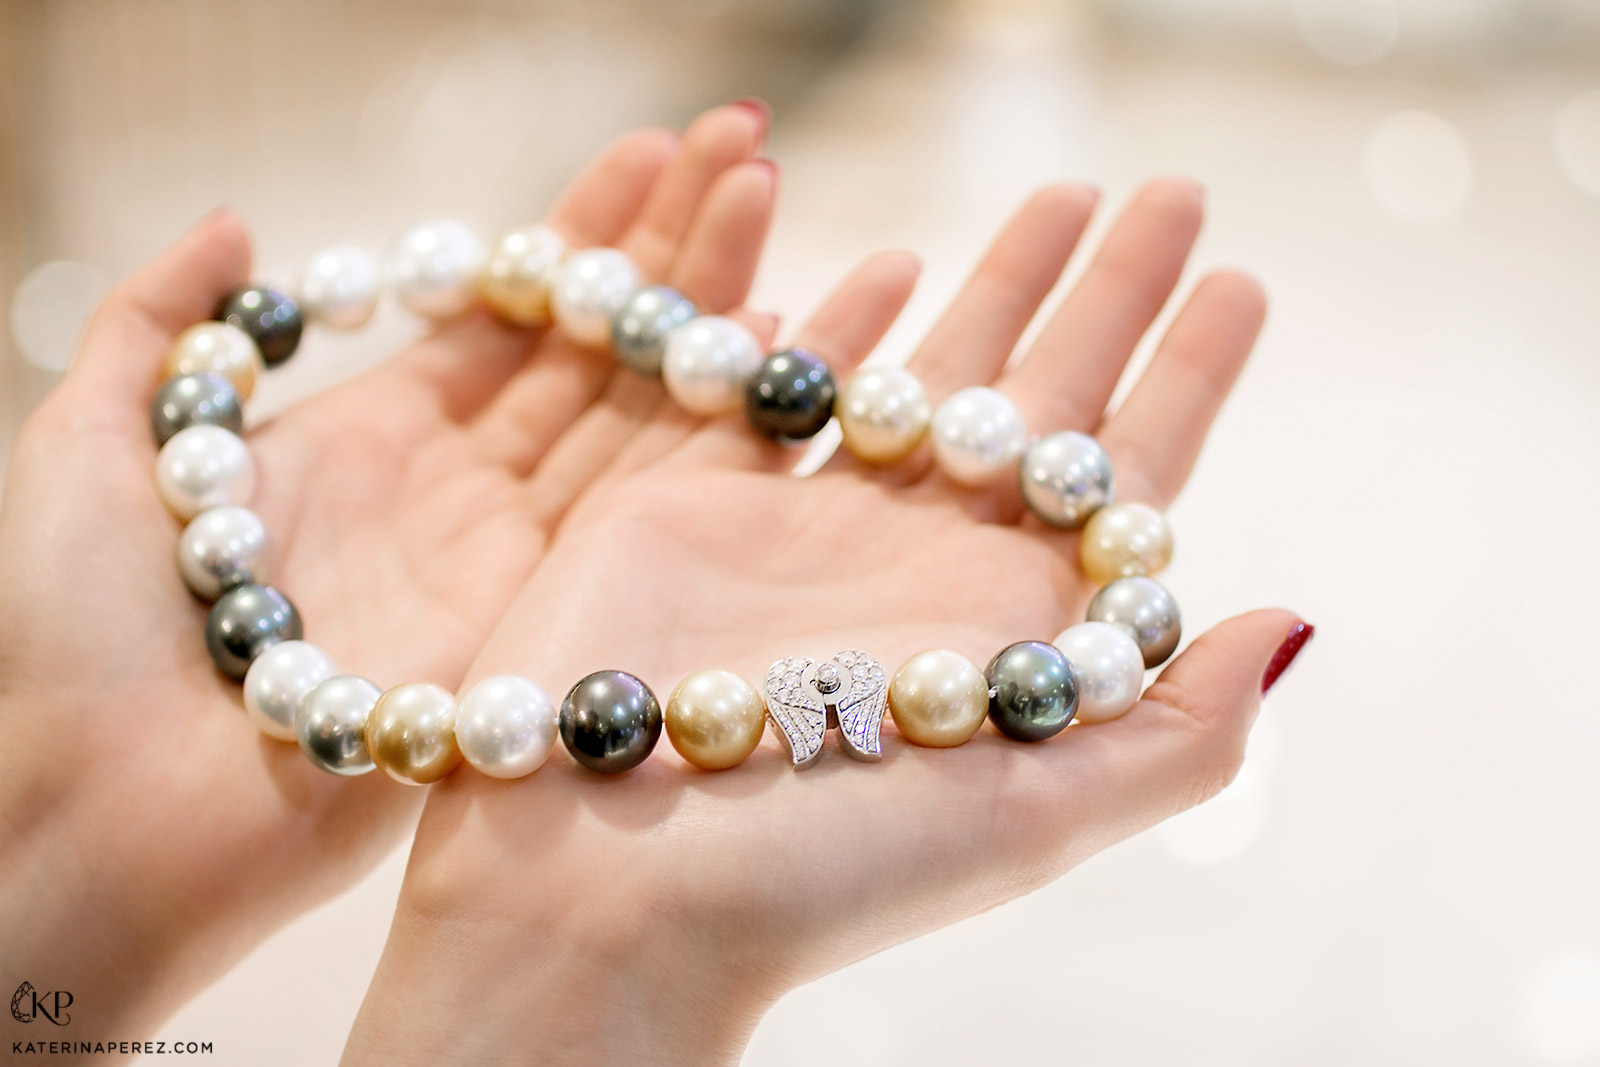 Ksenia Podnebesnaya necklace with South Sea and Tahitian pearls and diamond clasp